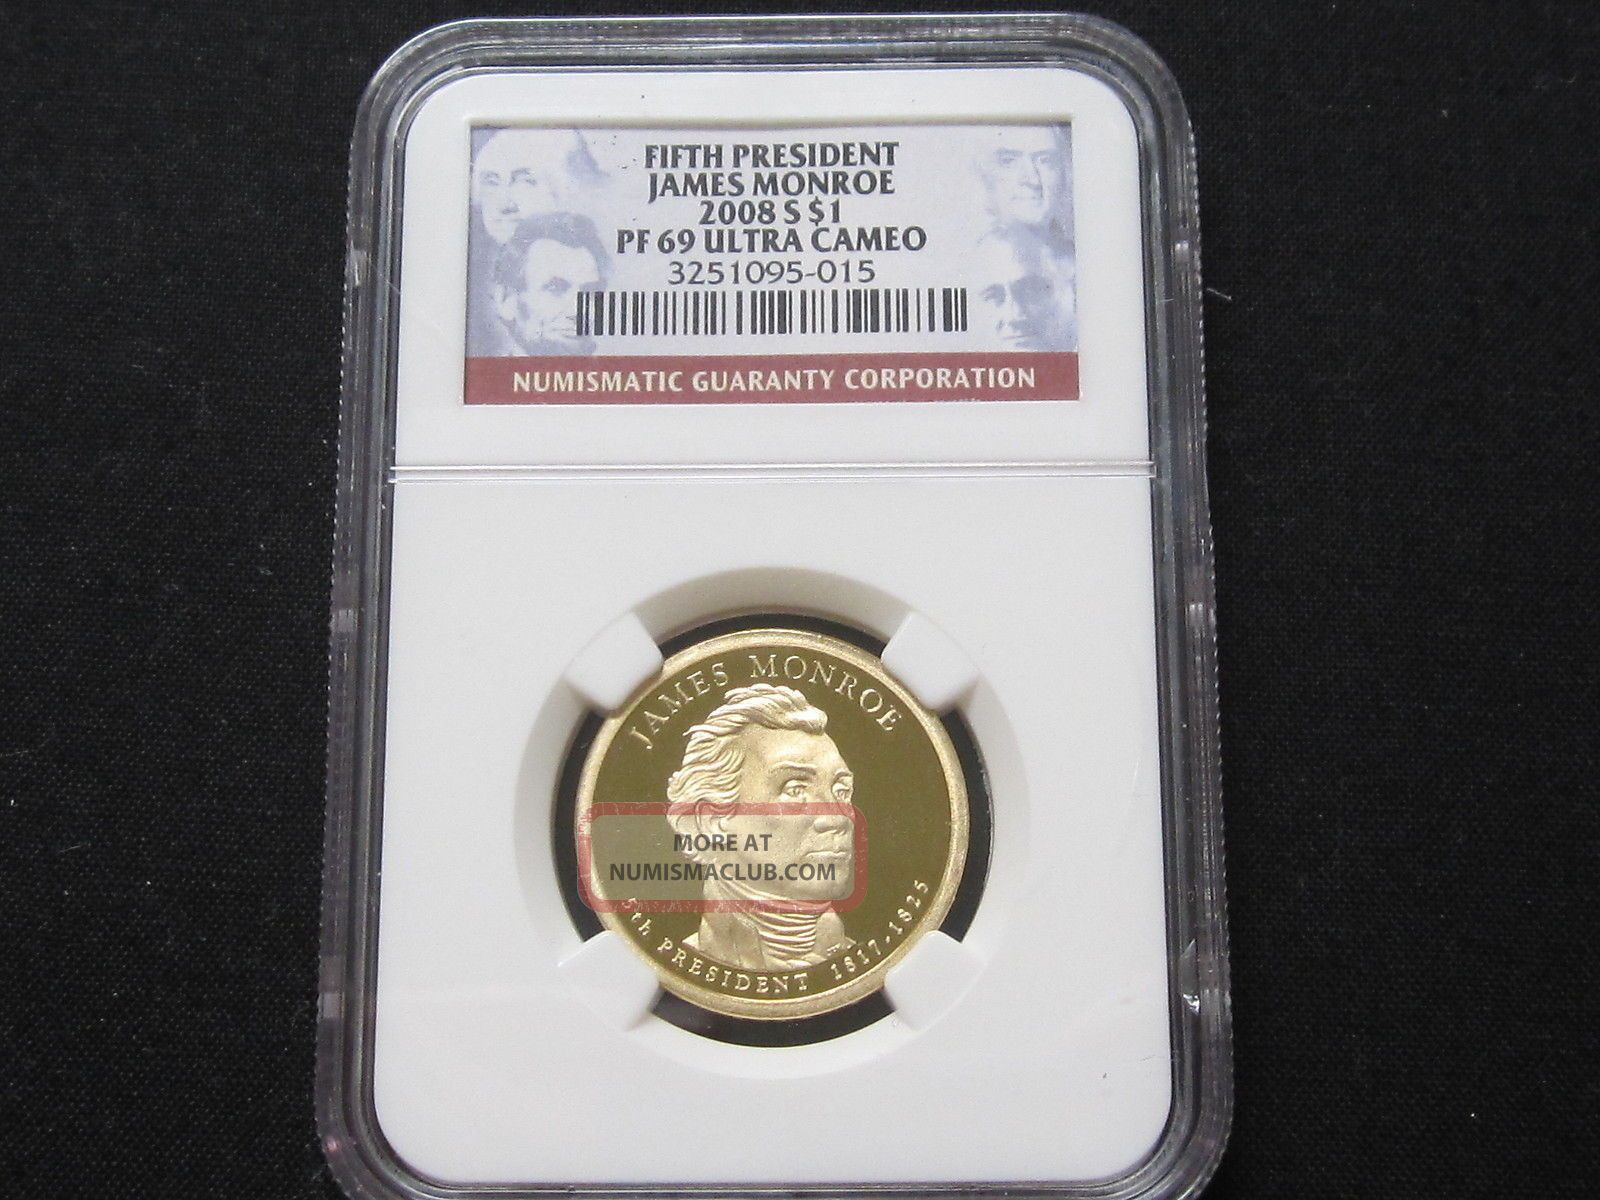 2008 S Proof James Monroe Presidential Dollar - Ngc Pf 69 Ultra Cameo (015) Dollars photo